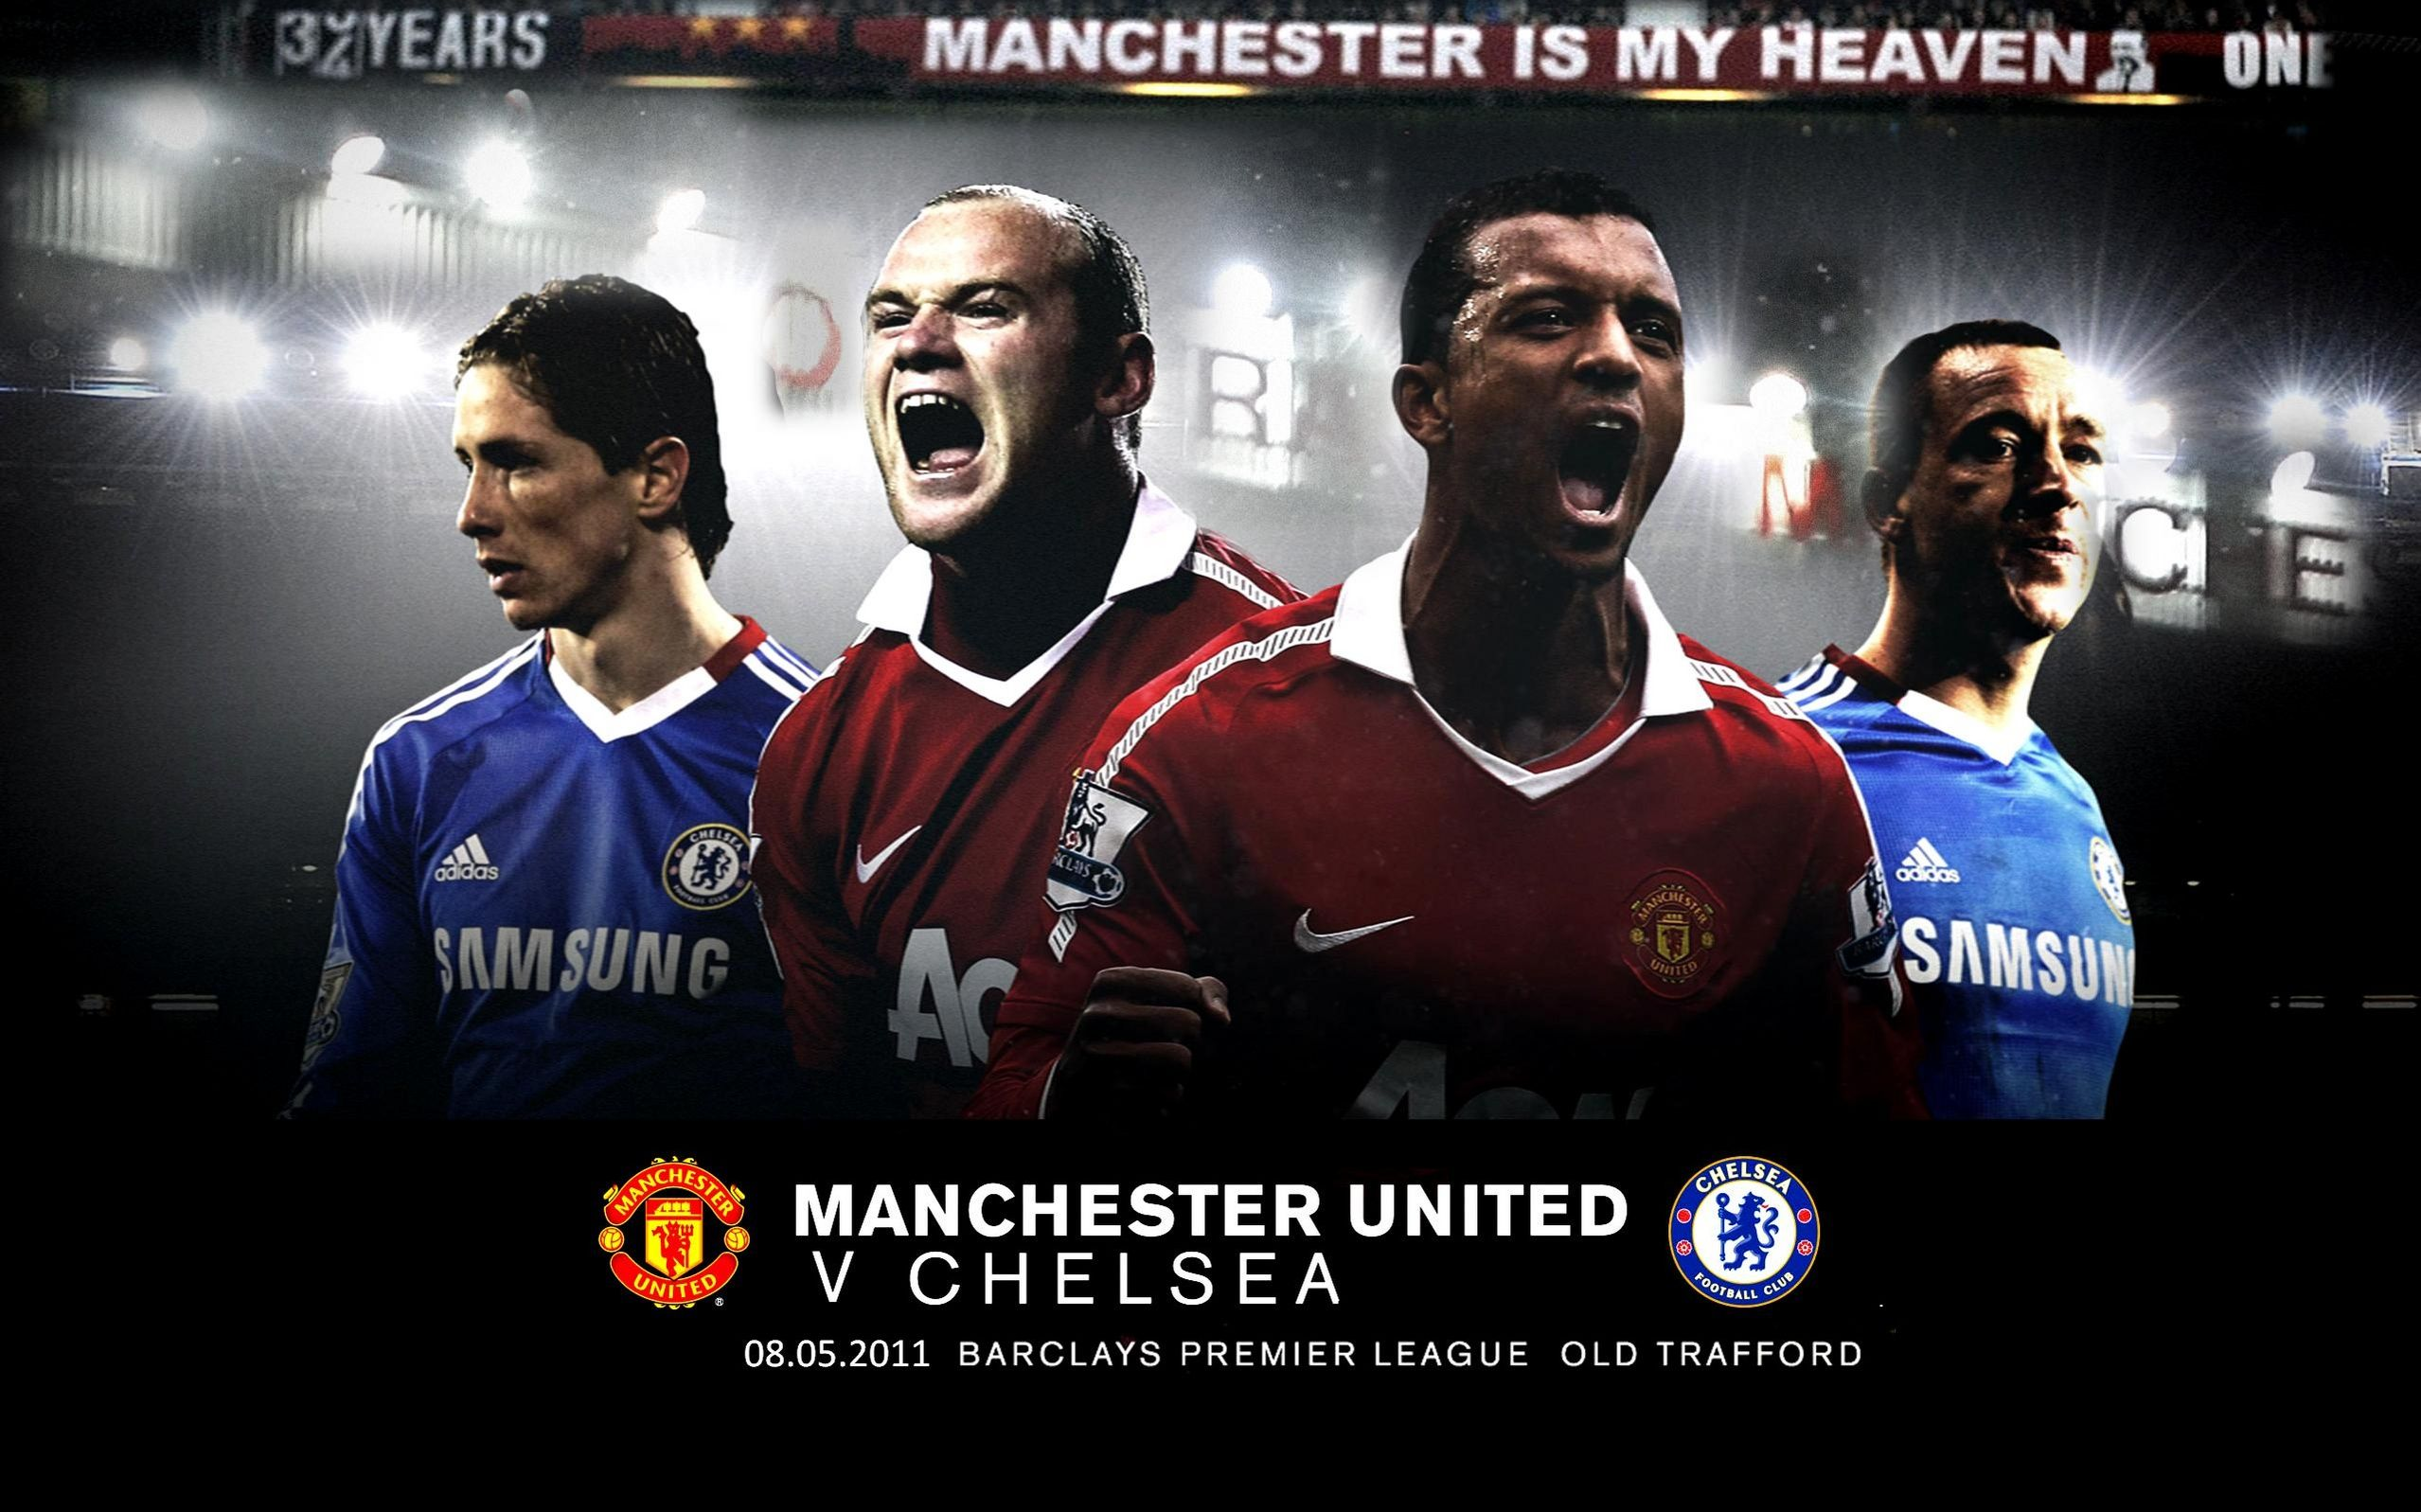 liverpool vs manchester united image http manchesterunitedwallpapers org liverpool